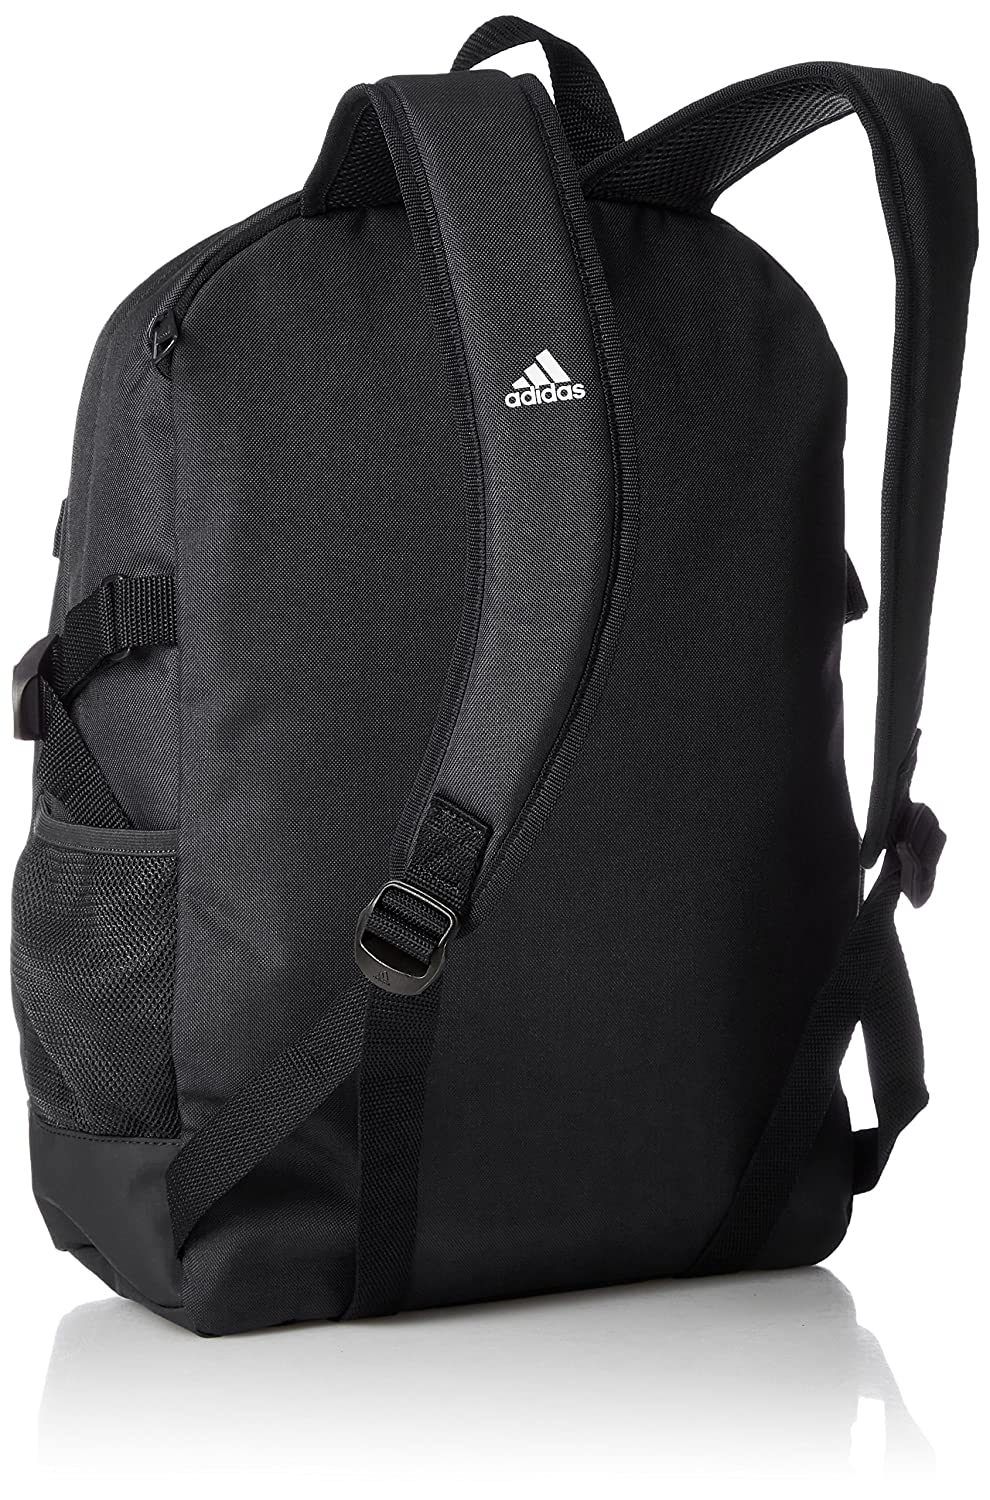 8539bef5 adidas 3-Stripes Power Backpack Medium - Black/White/White, 16 x 32 x 44  cm: Amazon.co.uk: Sports & Outdoors